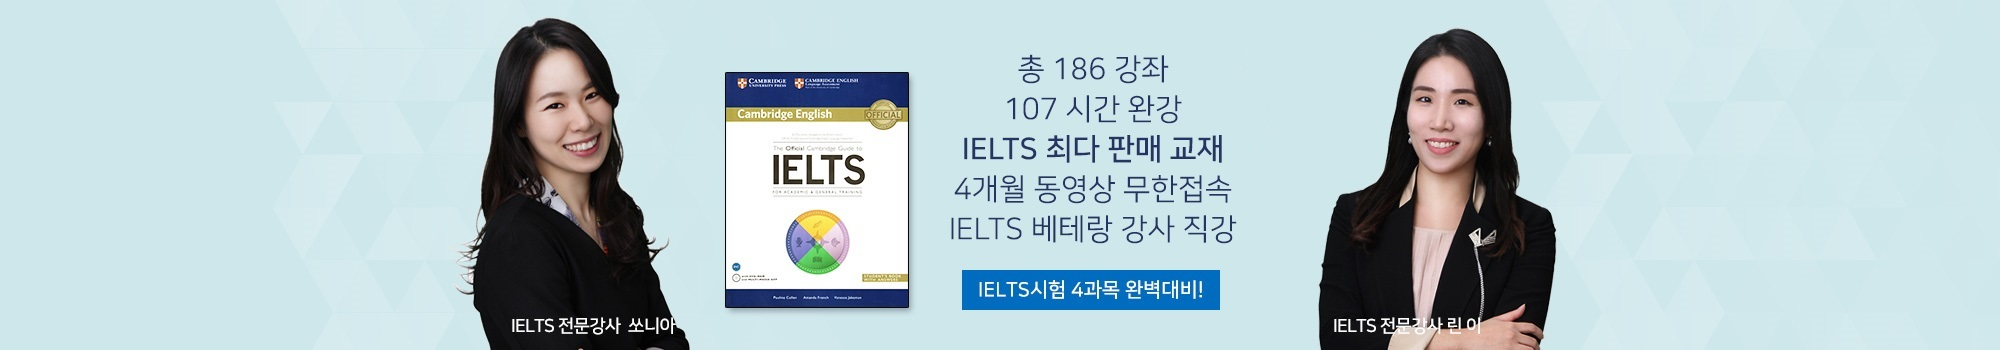 Guide to IELTS